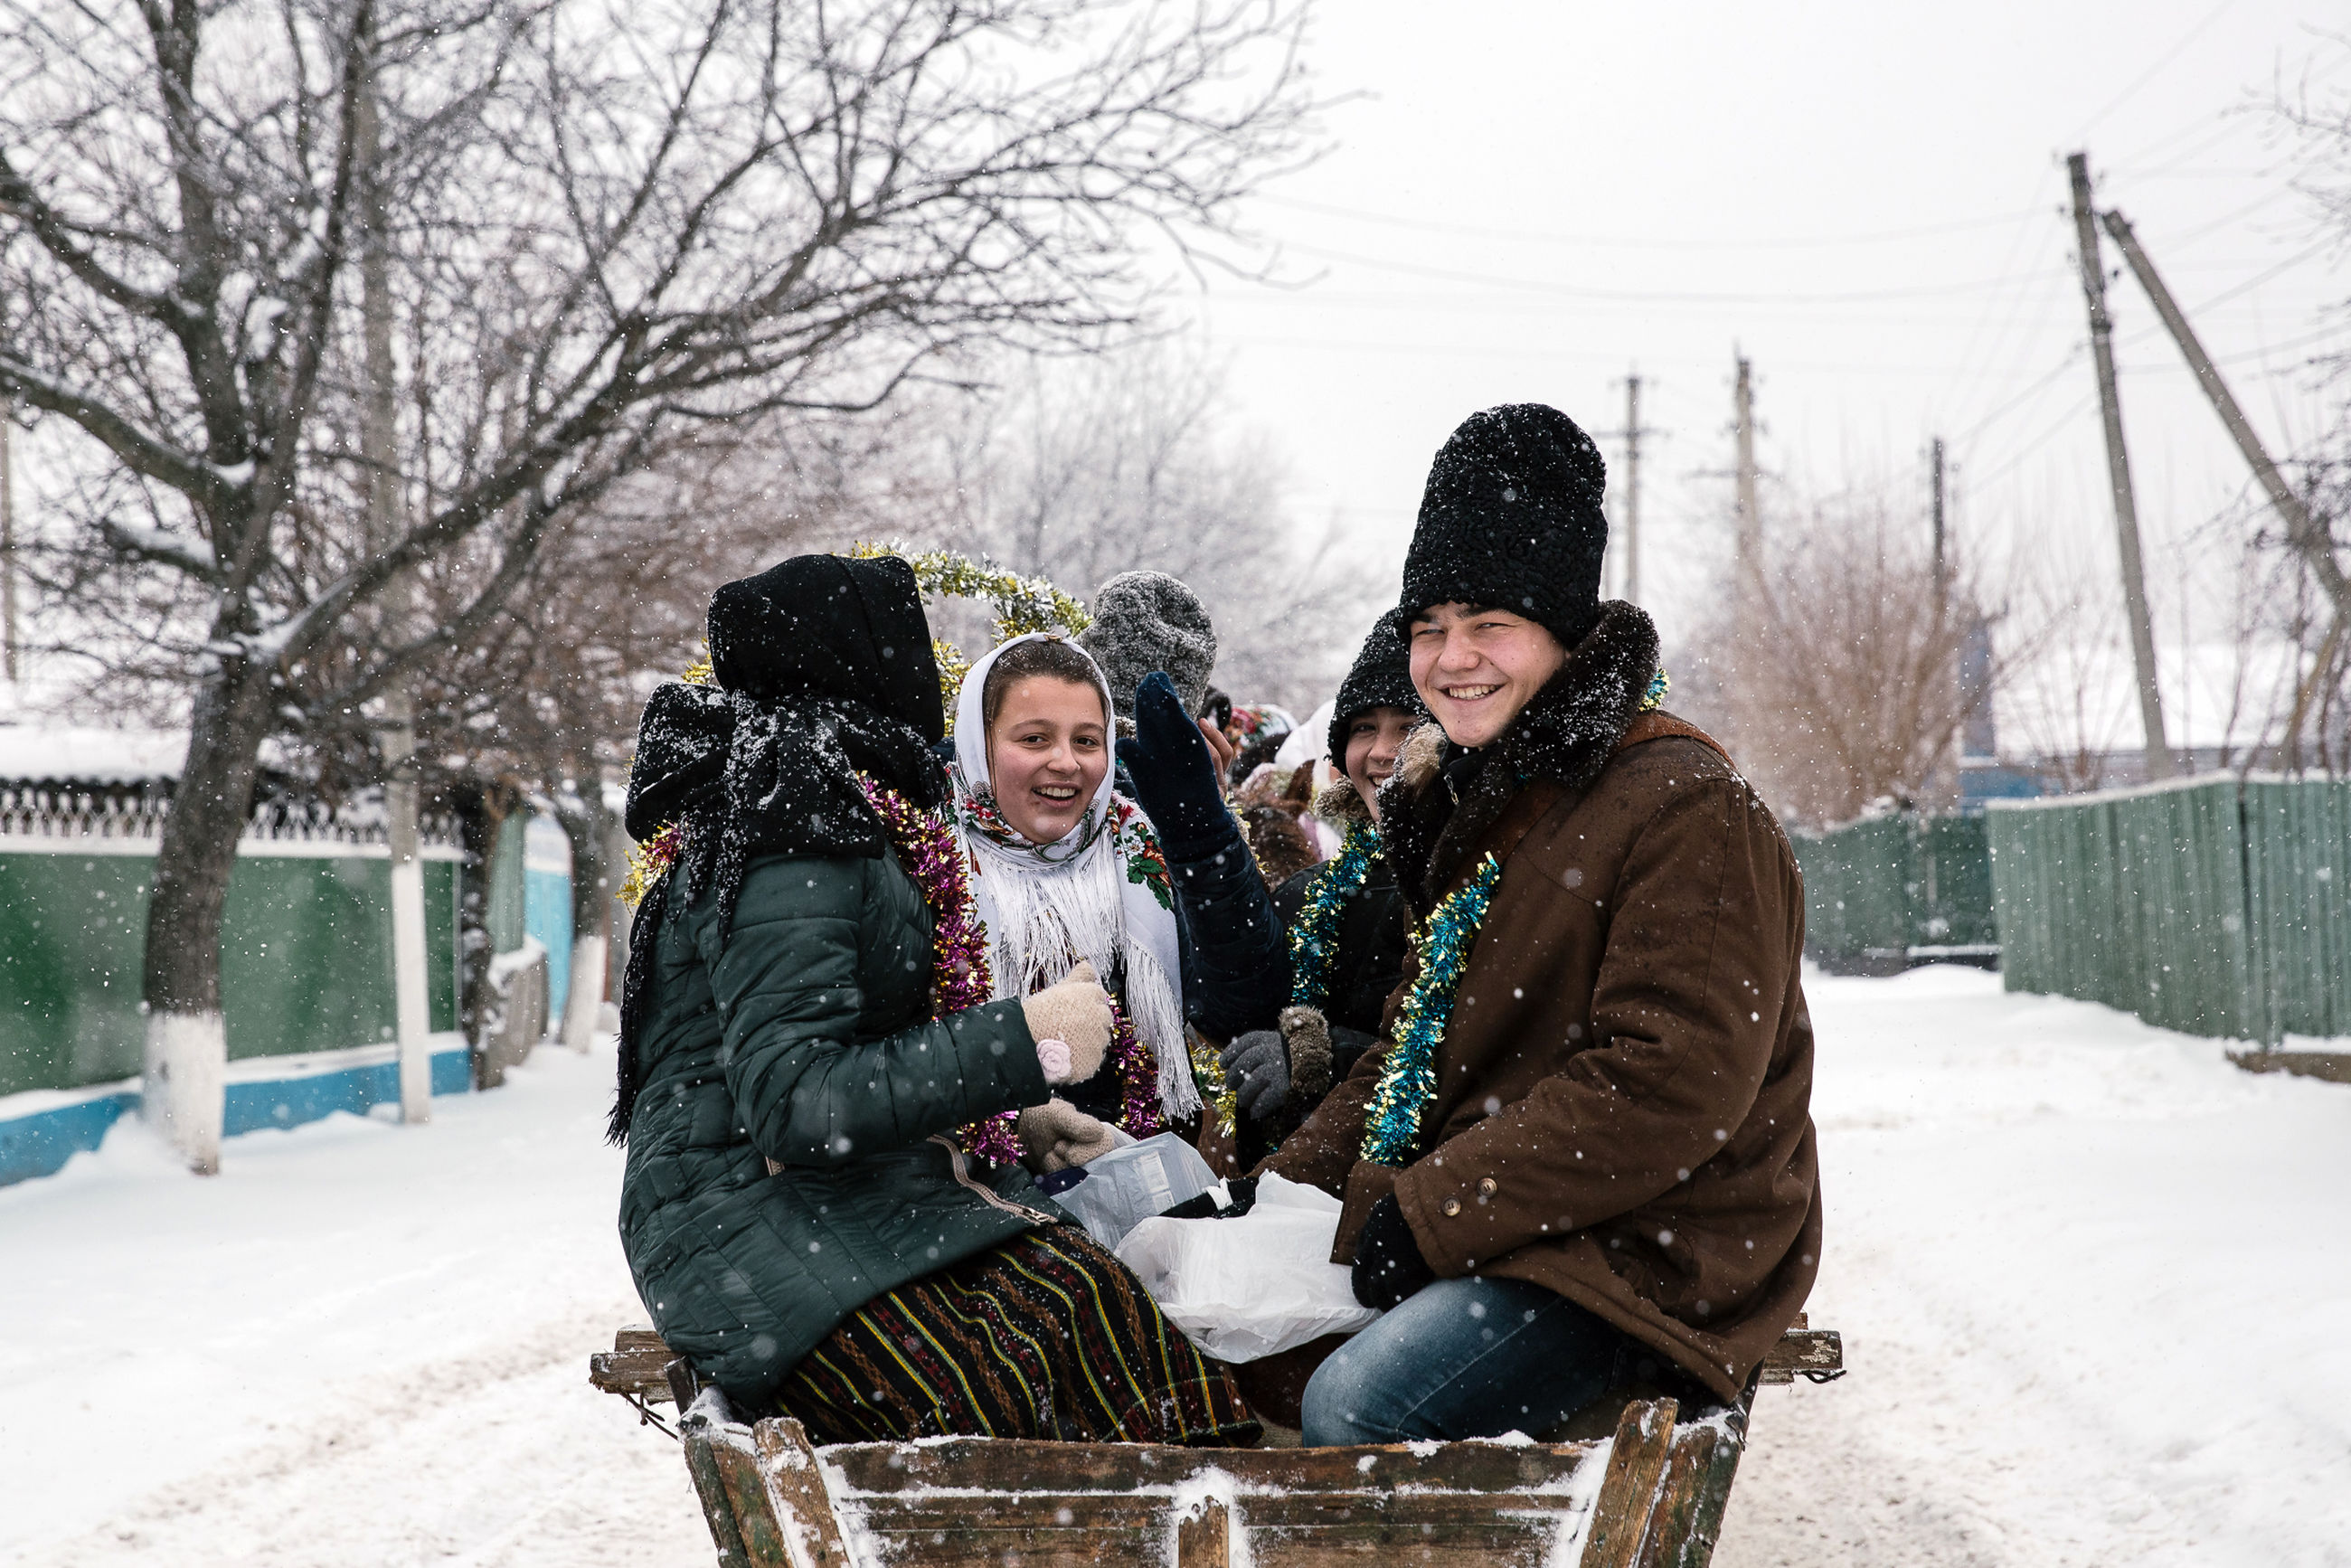 winter, cold temperature, snow, warm clothing, togetherness, clothing, tree, real people, bonding, nature, lifestyles, women, day, leisure activity, emotion, adult, females, people, bare tree, snowing, outdoors, extreme weather